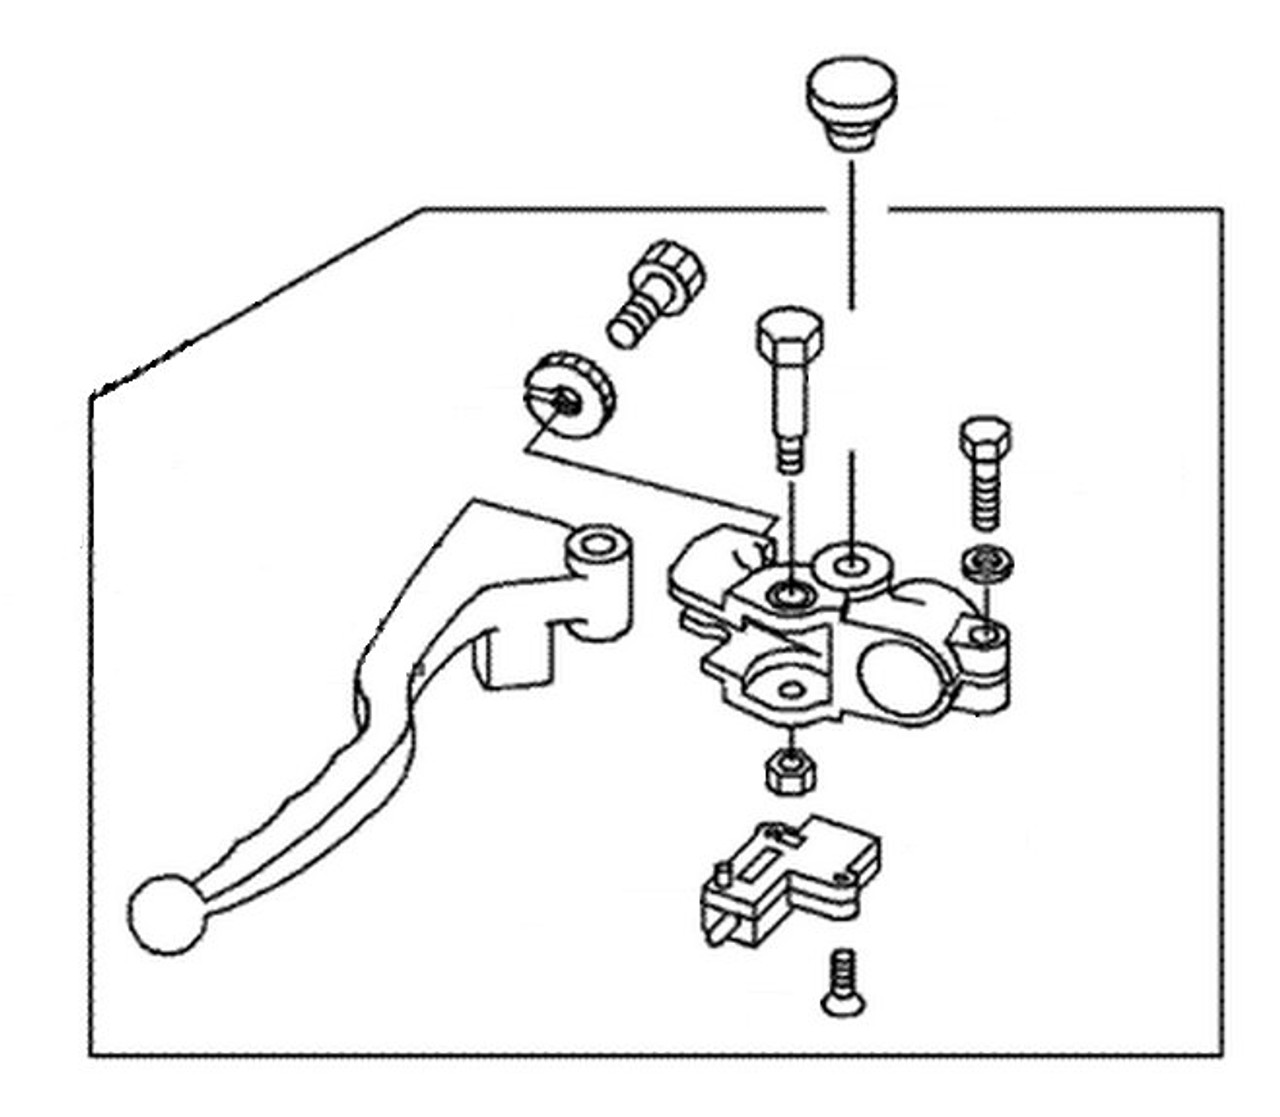 Kz1000 Clutch Diagram Wiring Diagrams \u2022 Problems Hooking Up Cd Player In 1987 190eschematiclighter: Kawasaki Kz900 Wiring Schematic At Hrqsolutions.co